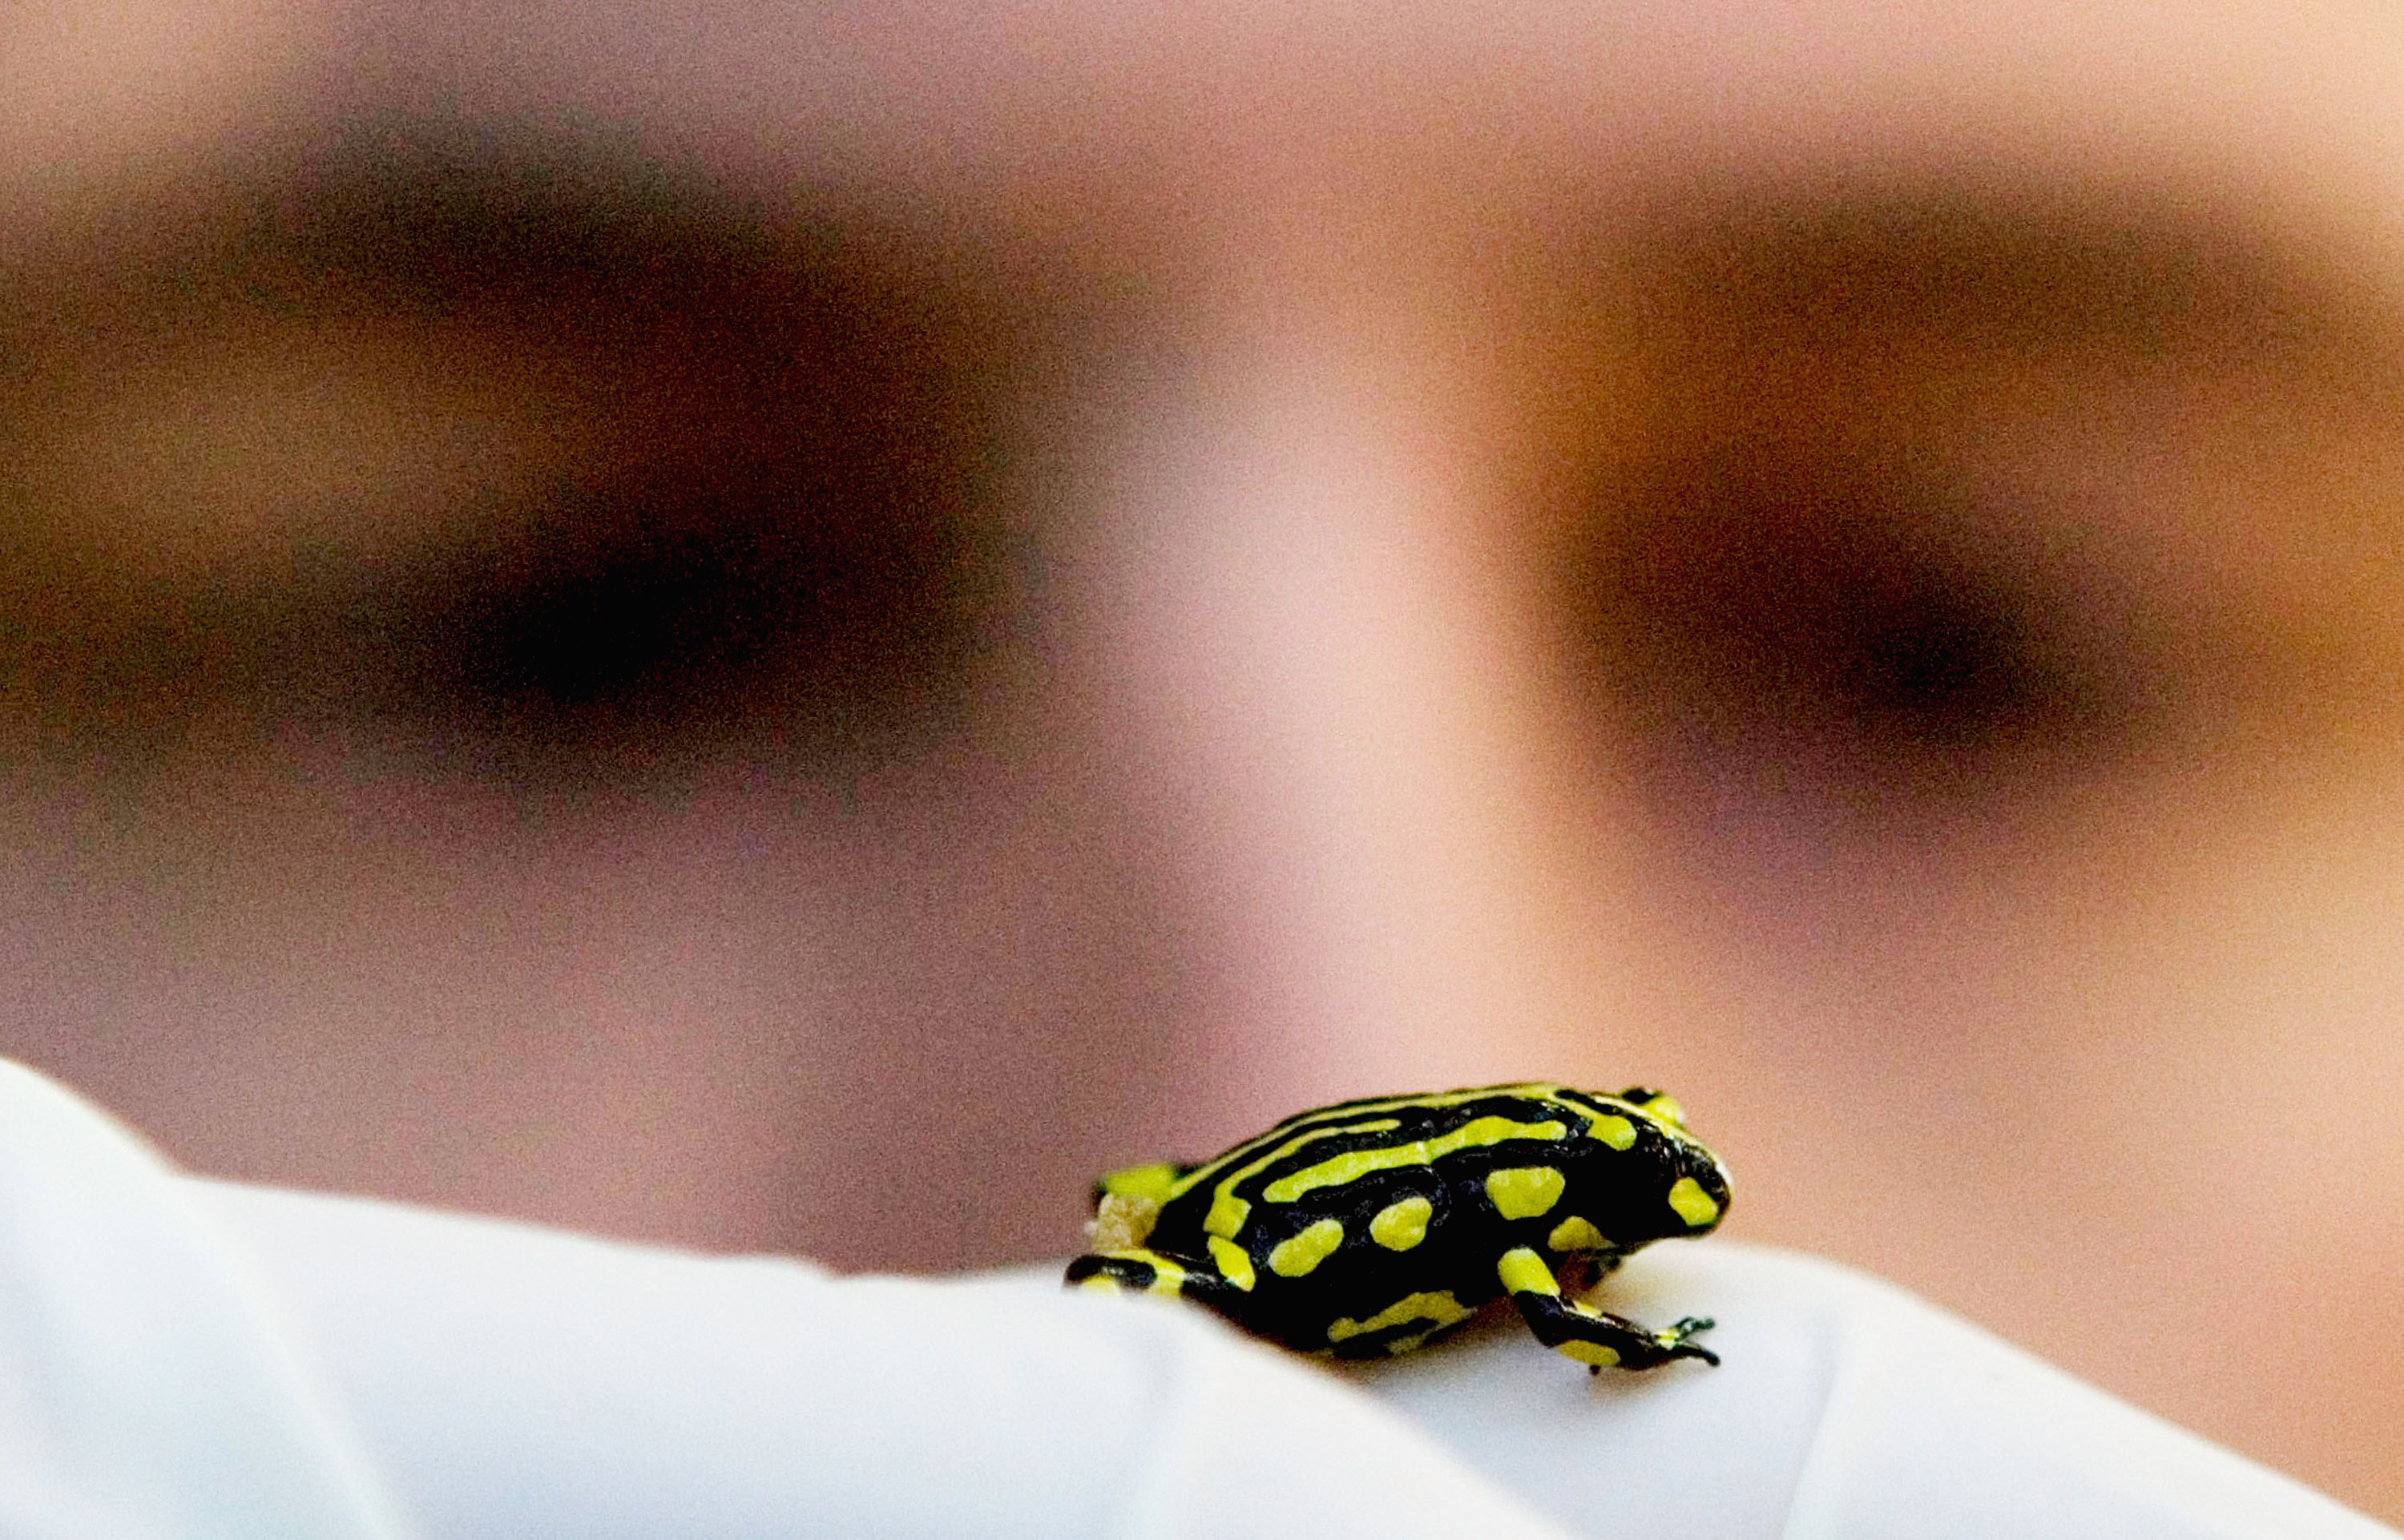 Only approximately 200 Corroboree frogs exist in the wild.